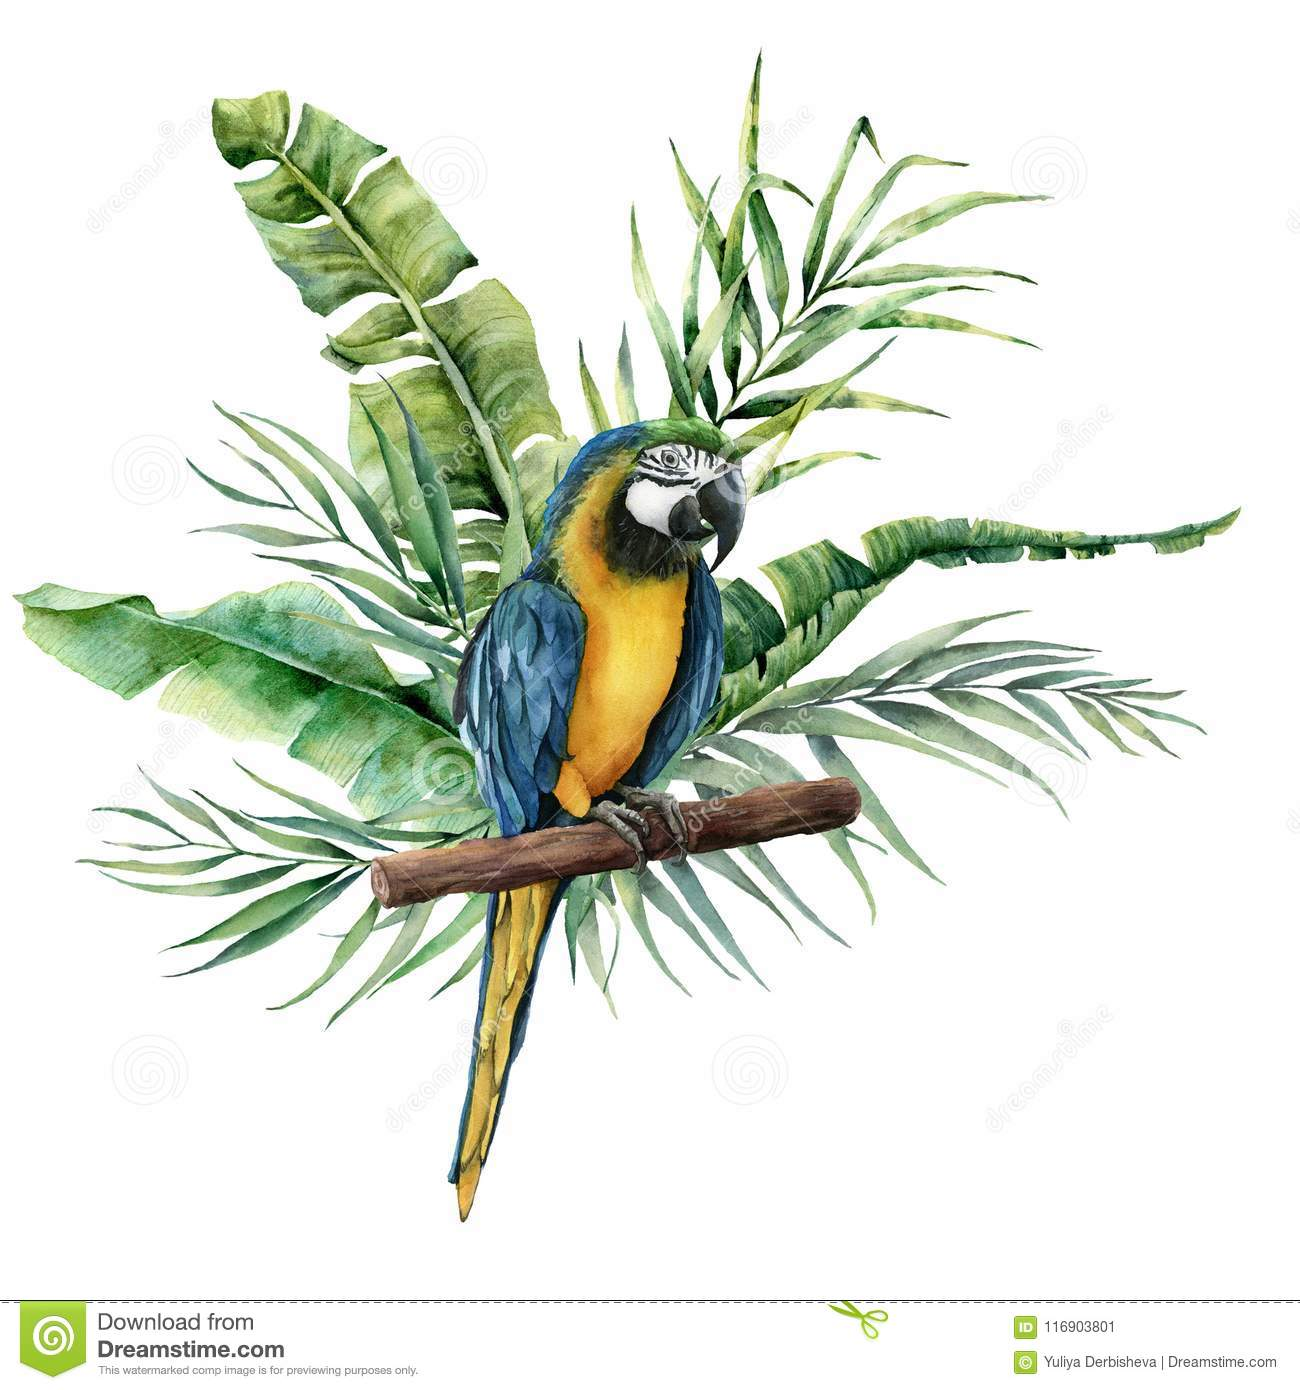 Watercolor parrot with tropical leaves. Hand painted parrot with monstera, banana and palm greenery branch isolated on